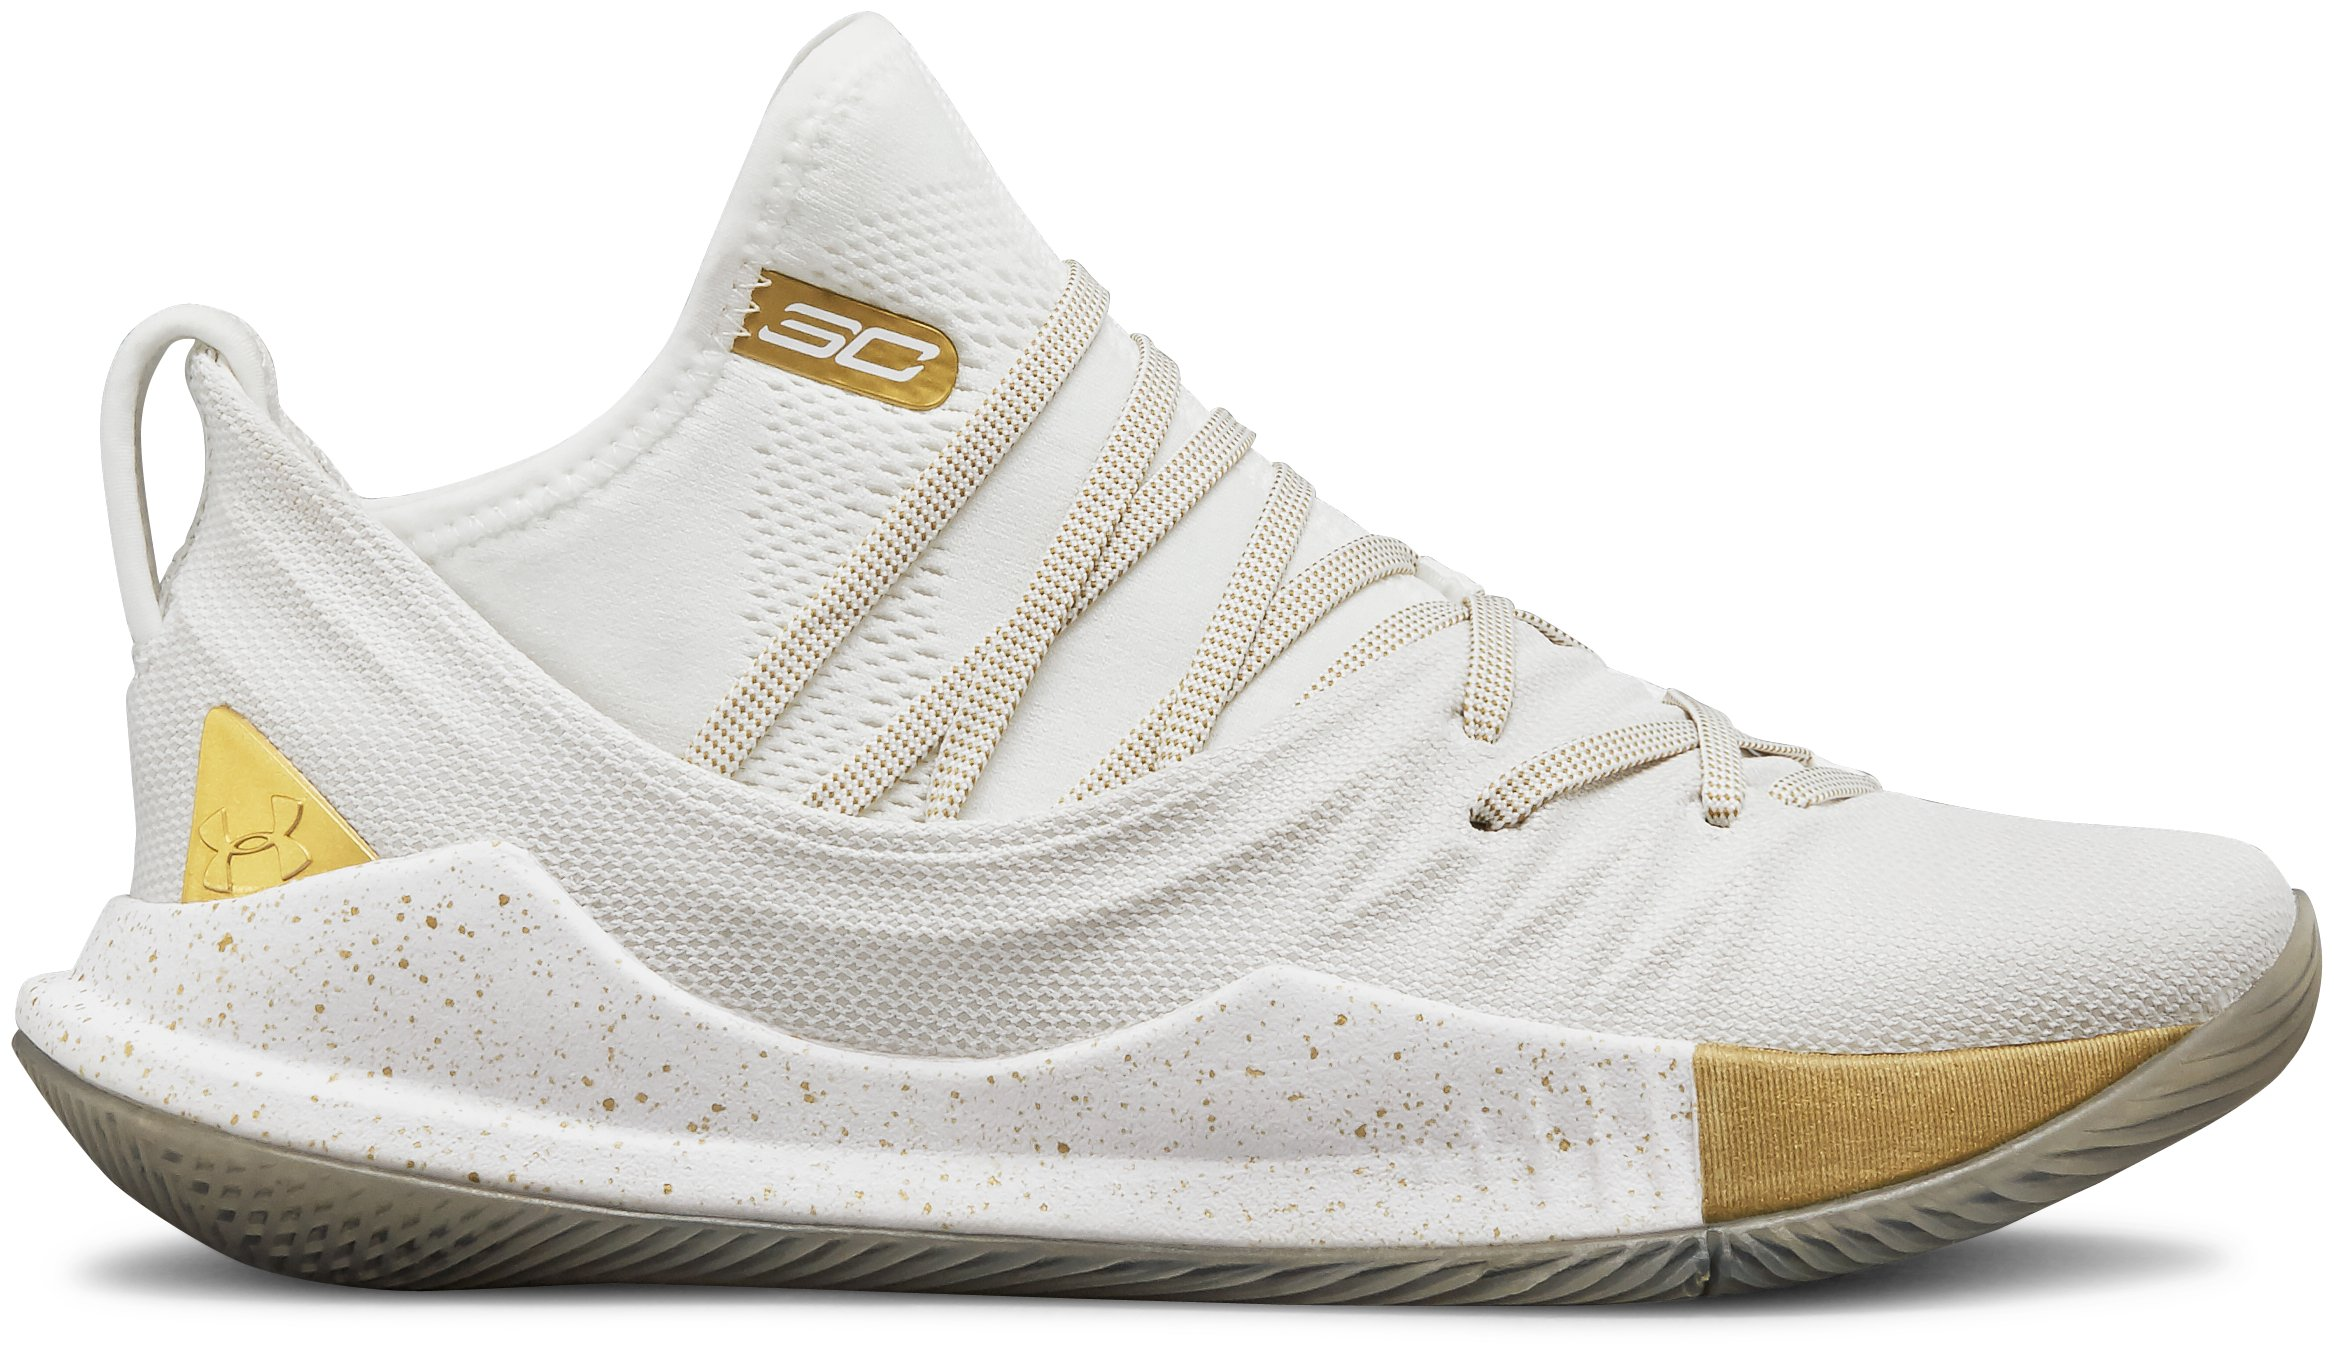 Grade School UA Curry 5 Basketball Shoes, 360 degree view